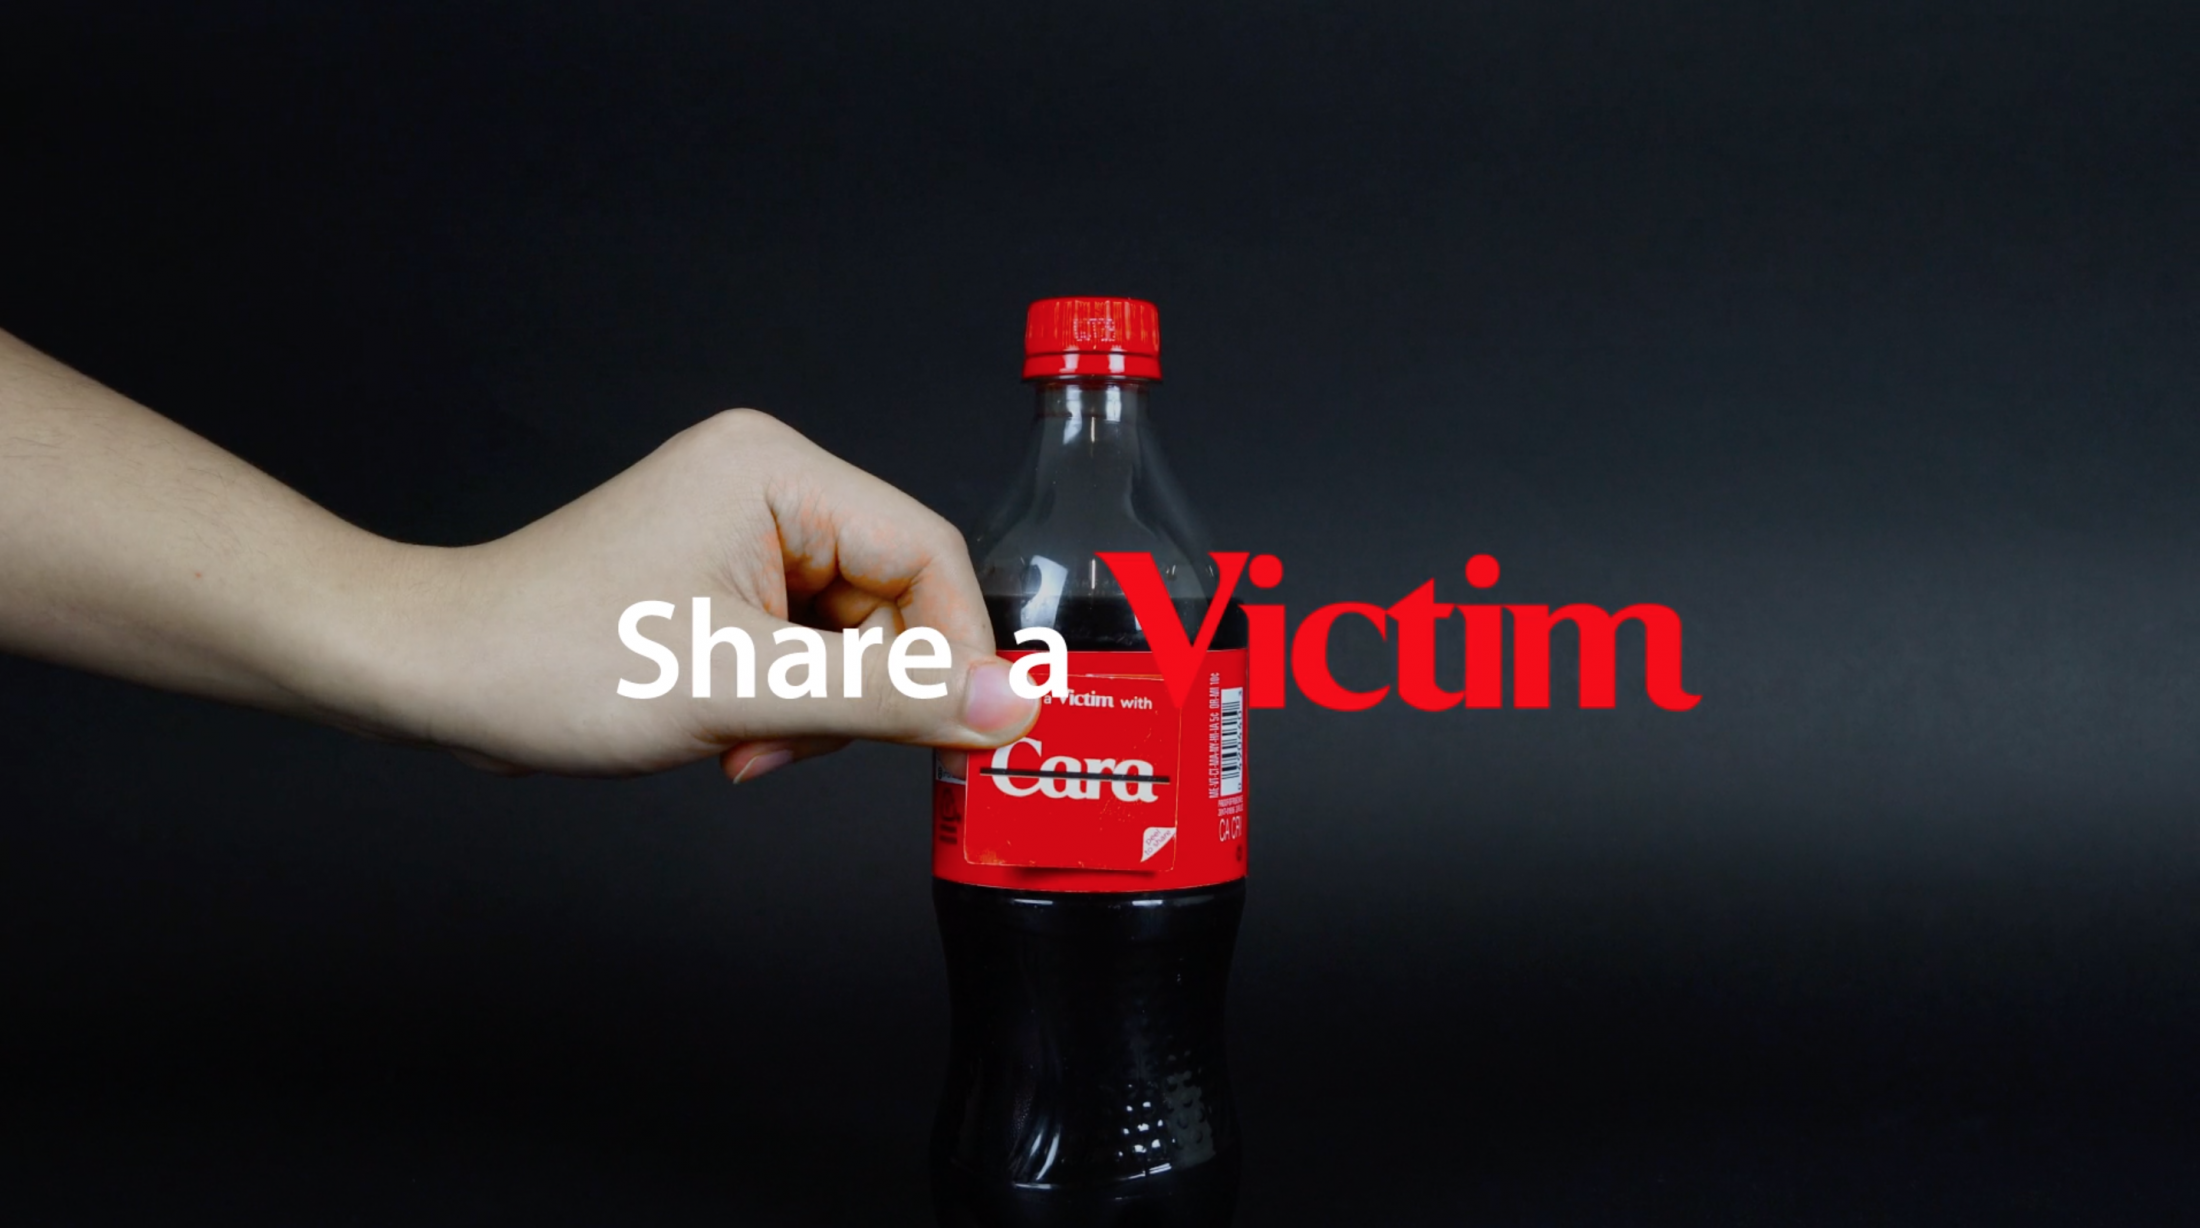 Thumbnail for Share A Victim